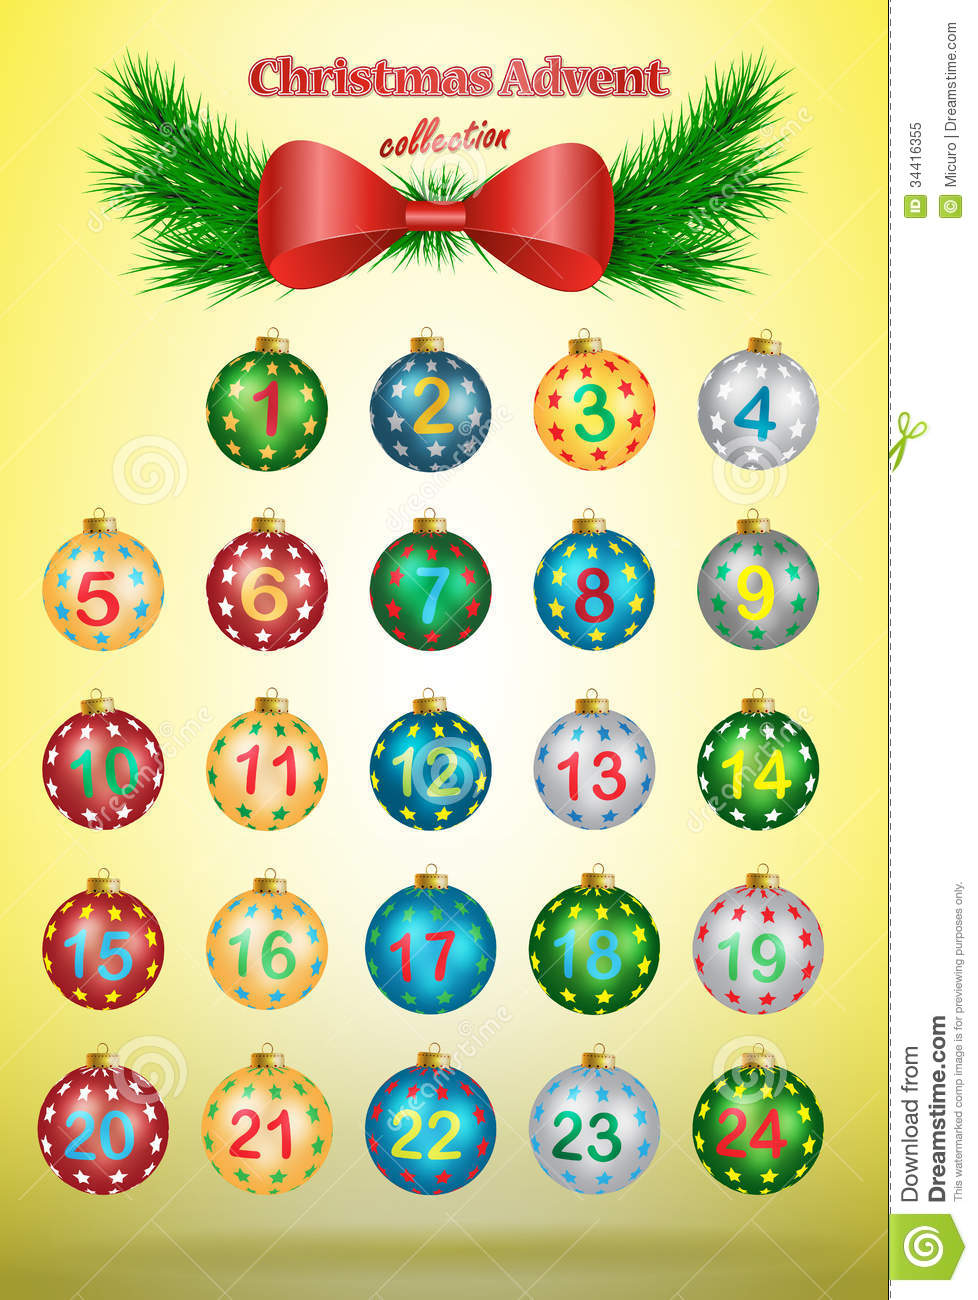 Christmas Advent Calendar Royalty Free Stock Photo - Image: 34416355